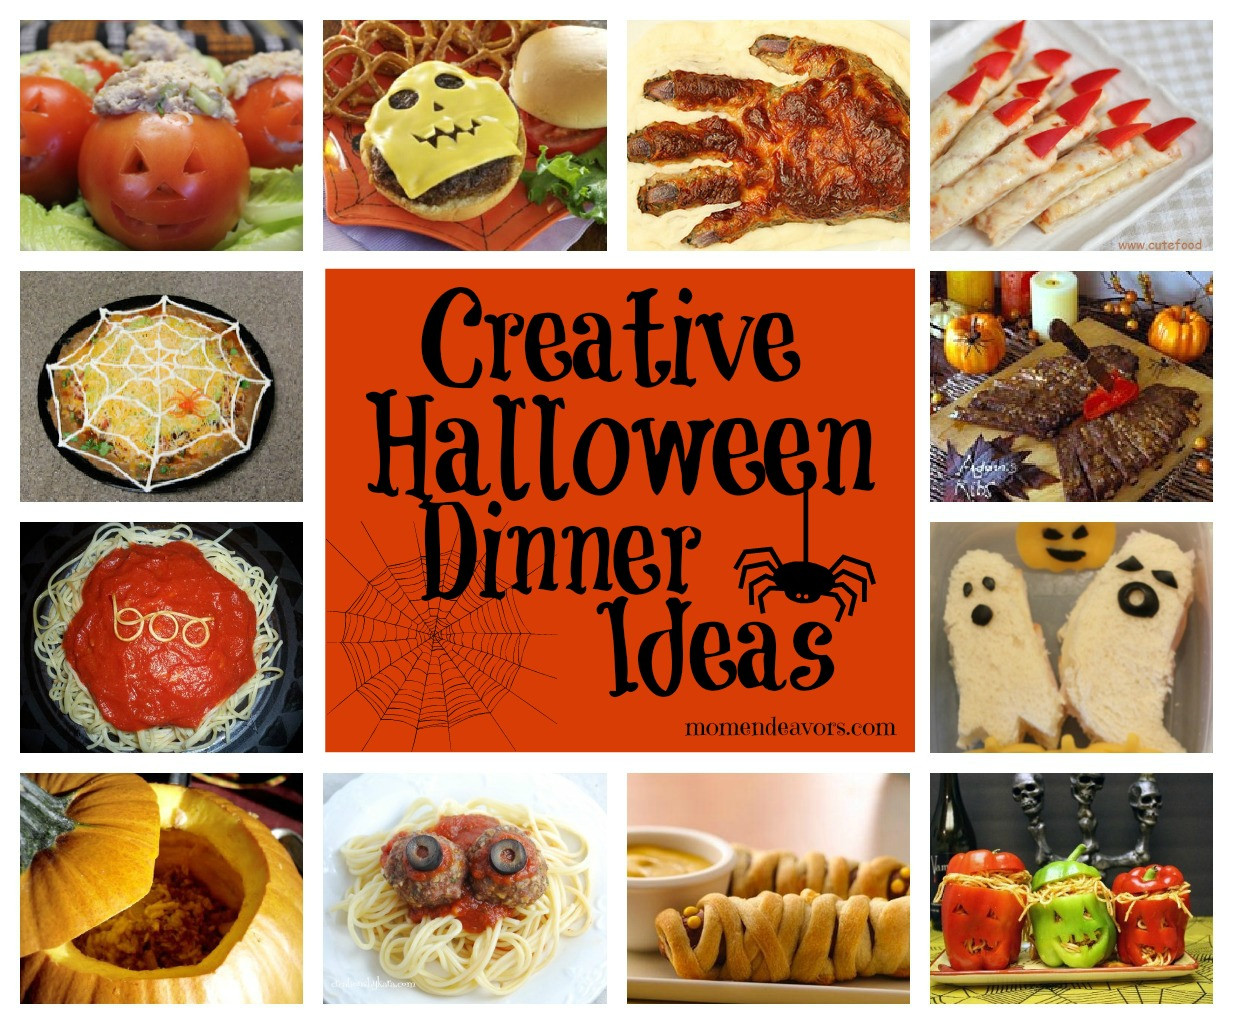 Fun Halloween Dinners  15 Creative Halloween Dinner Ideas